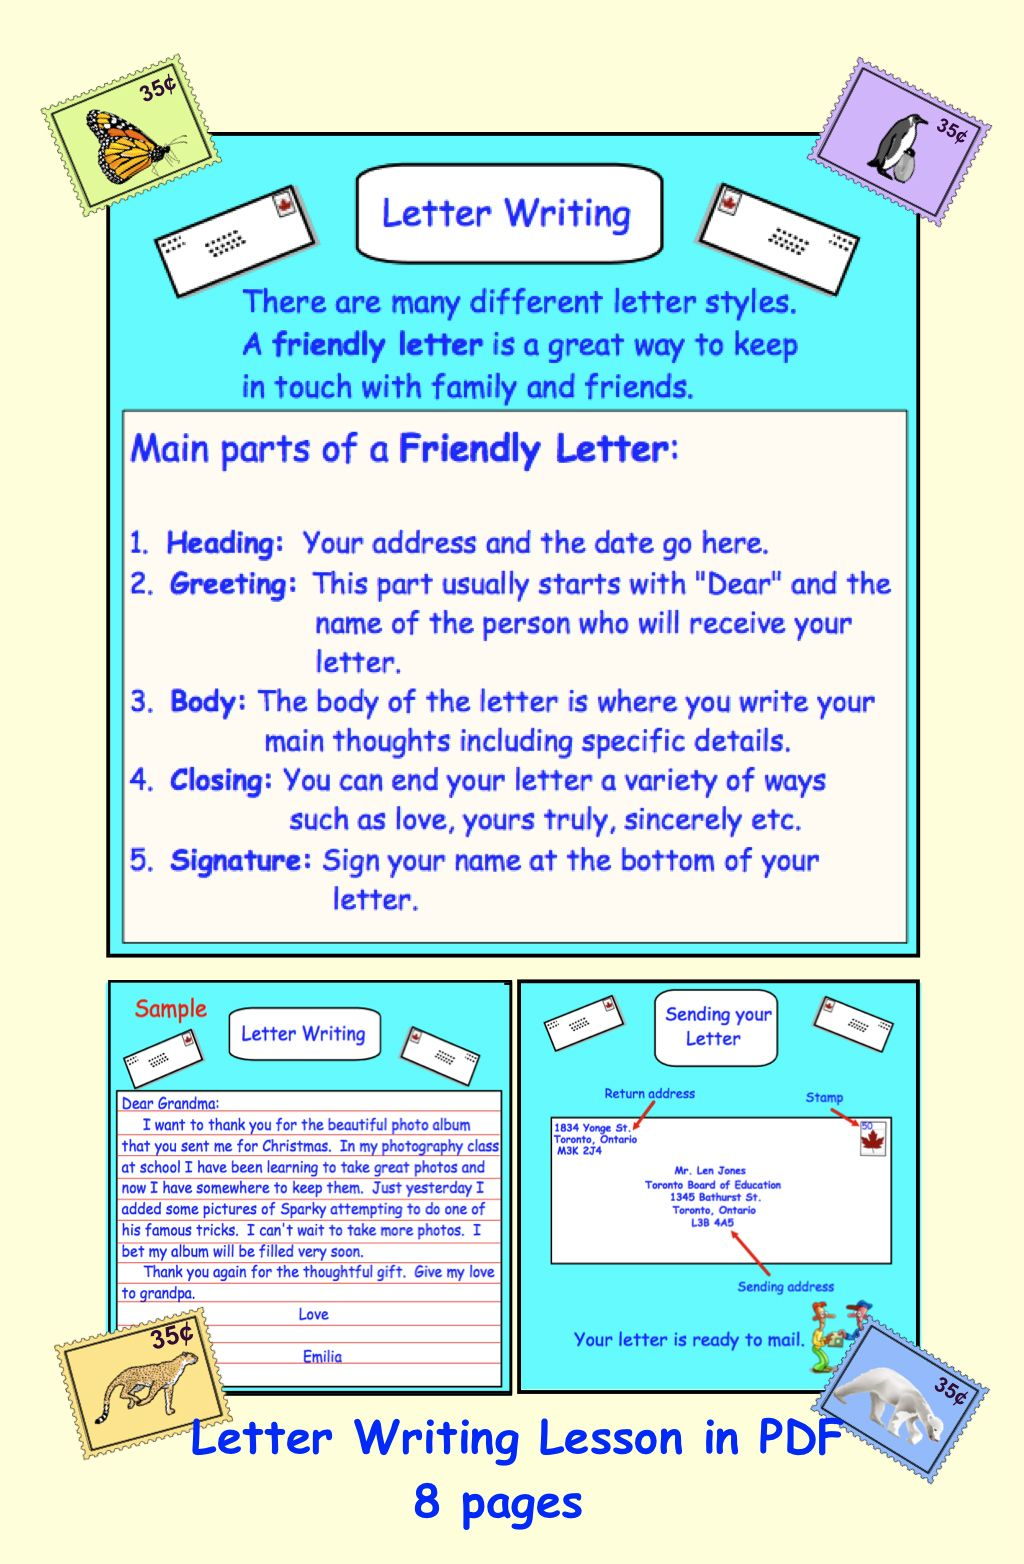 Letter writing friendlybusiness pdf writing lessons pdf and letter writing friendlybusiness pdf spiritdancerdesigns Gallery